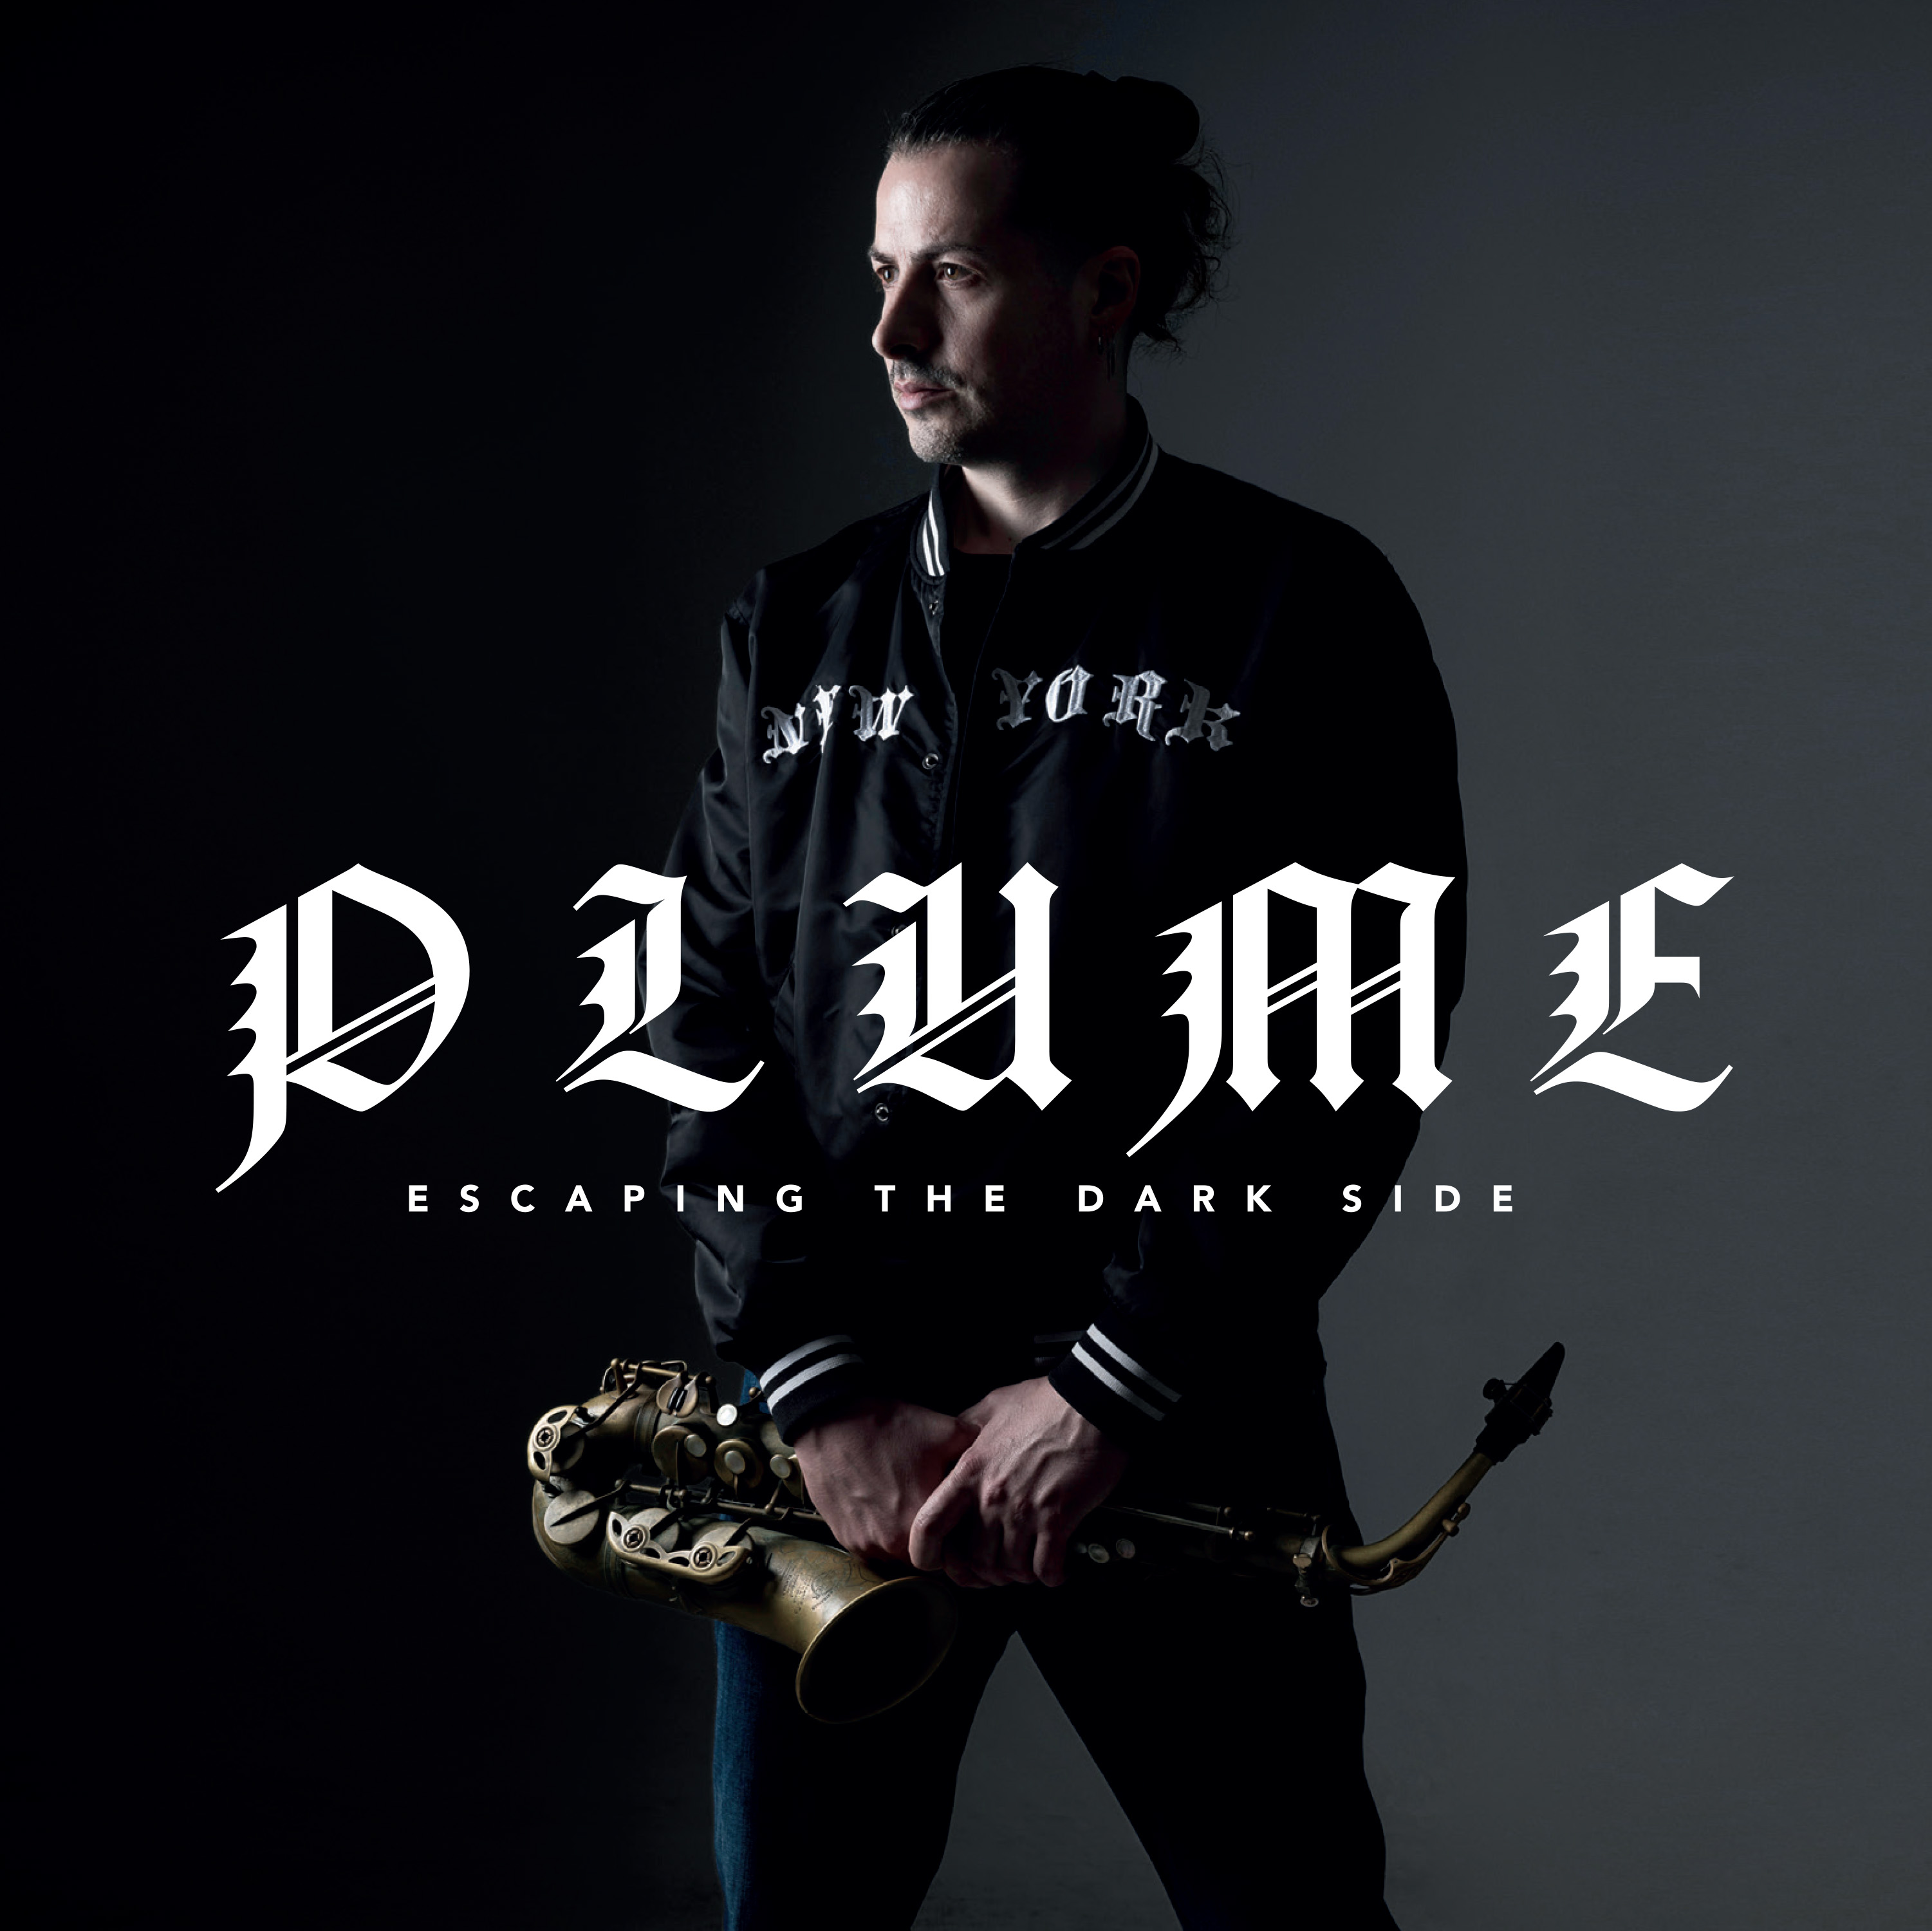 Plume « Escaping the Dark Side »